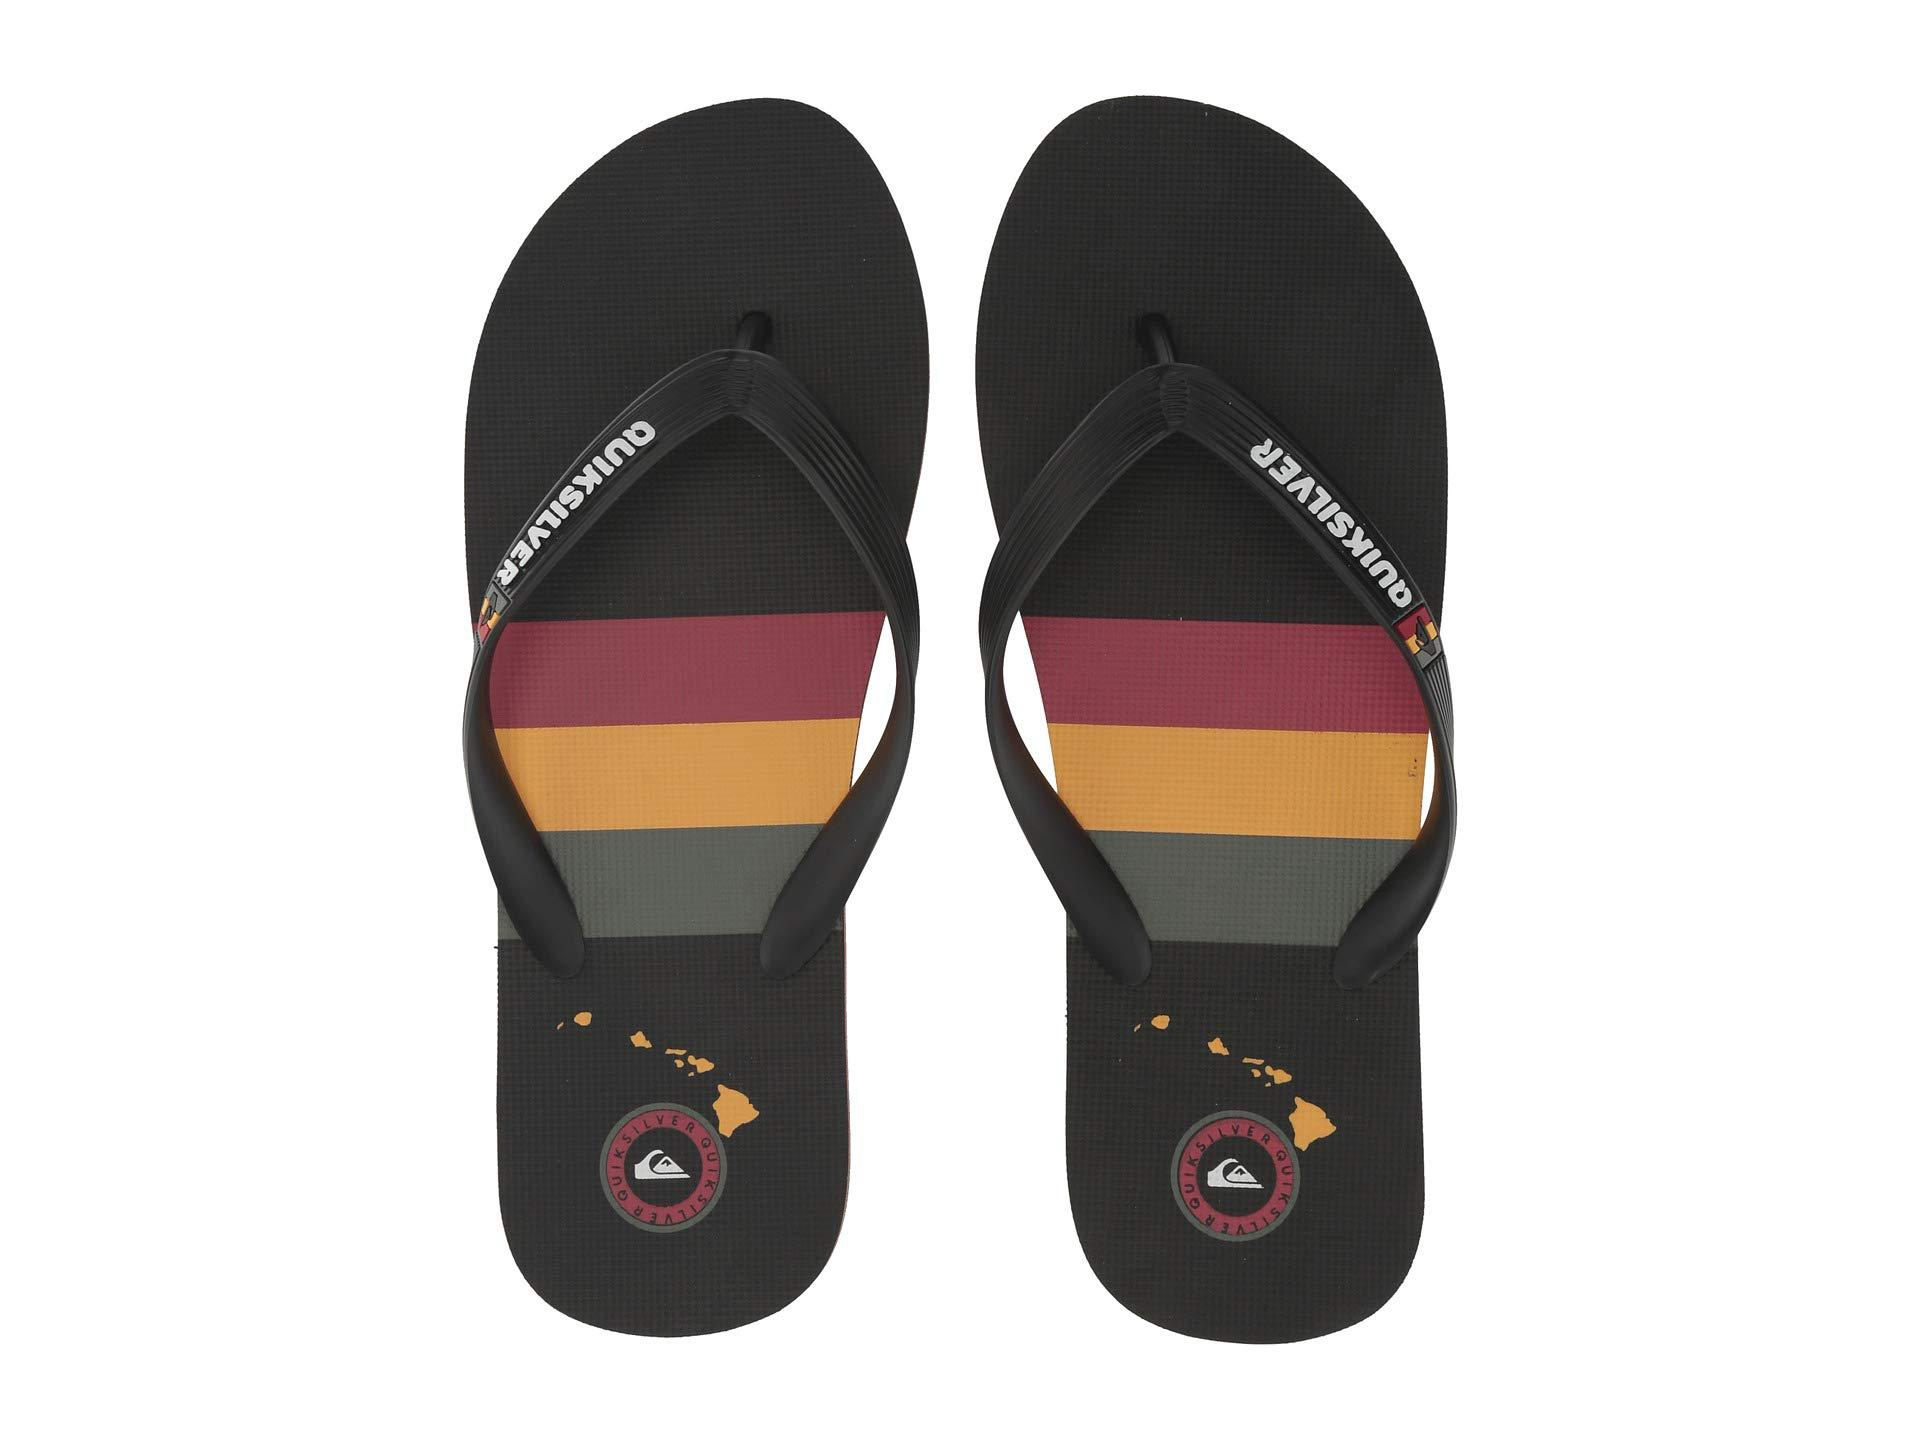 15b1e8d700593b Quiksilver - Molokai Print (black grey white) Men s Sandals for Men -. View  fullscreen